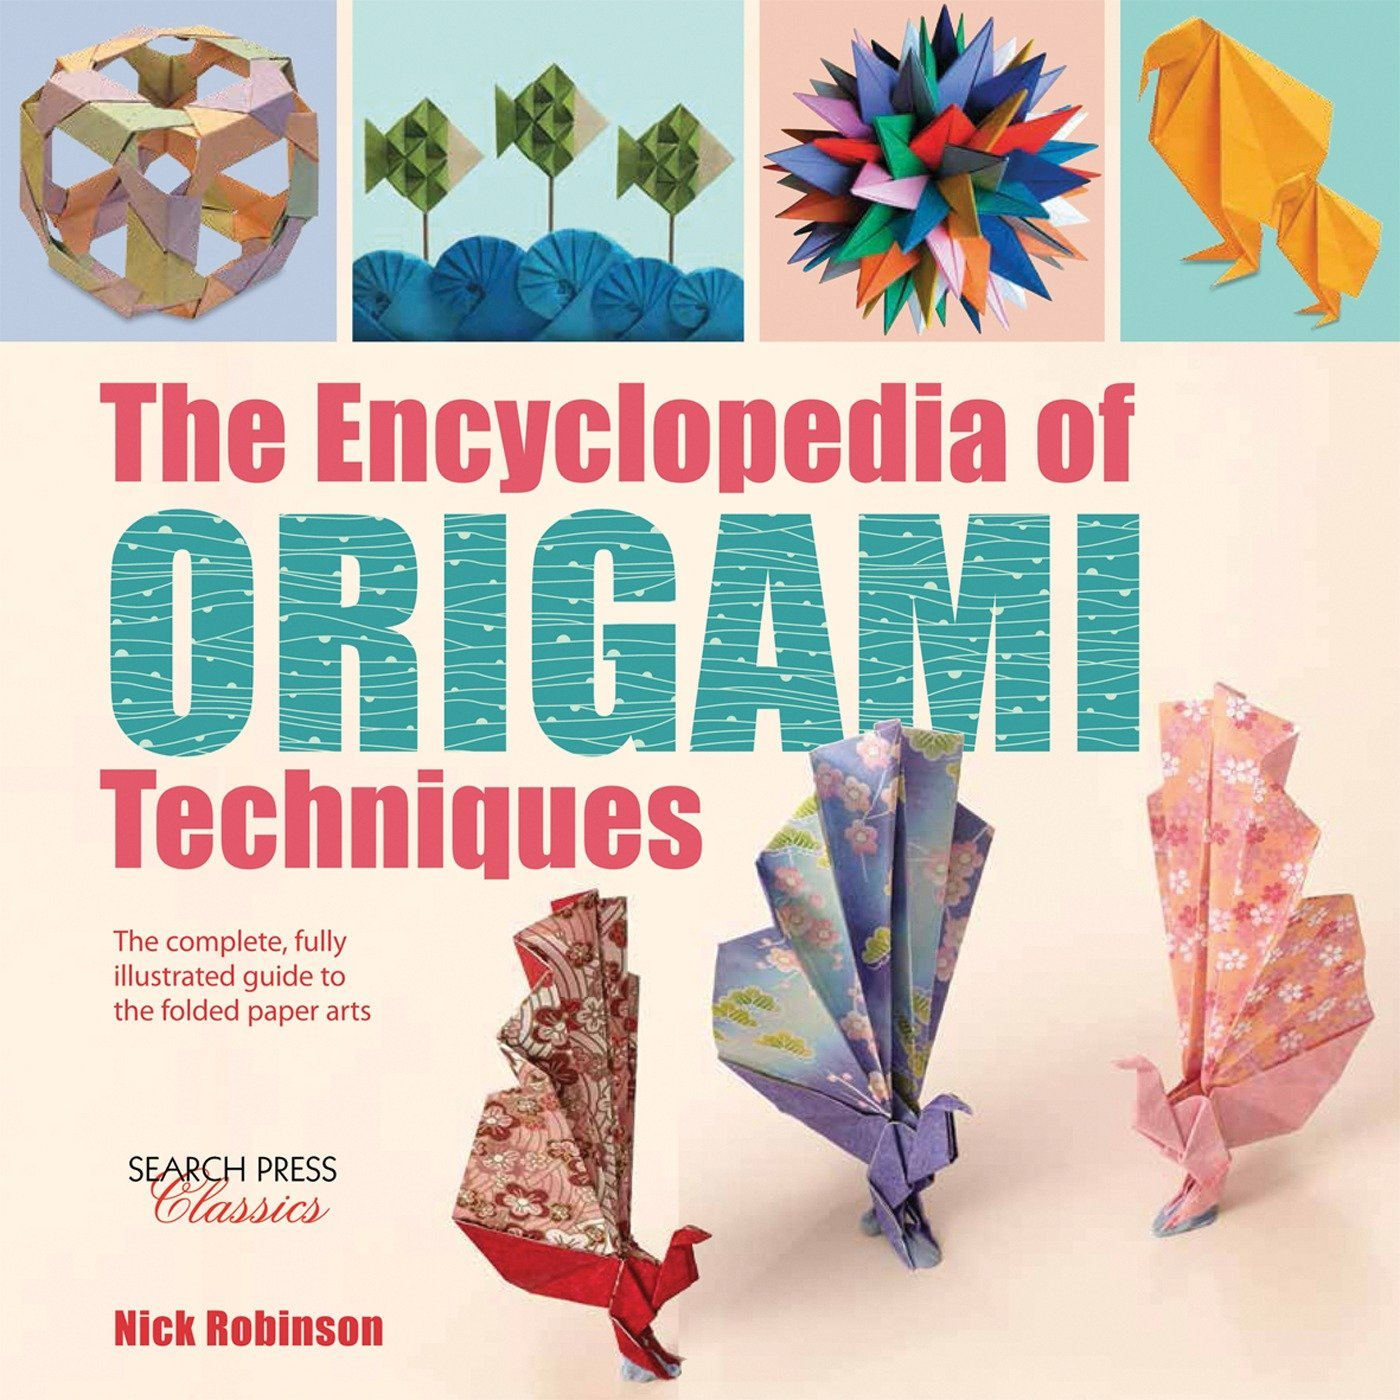 Encyclopedia of Origami Techniques, The: The complete, fully illustrated guide to the folded paper arts (Search Press Classics) PDF